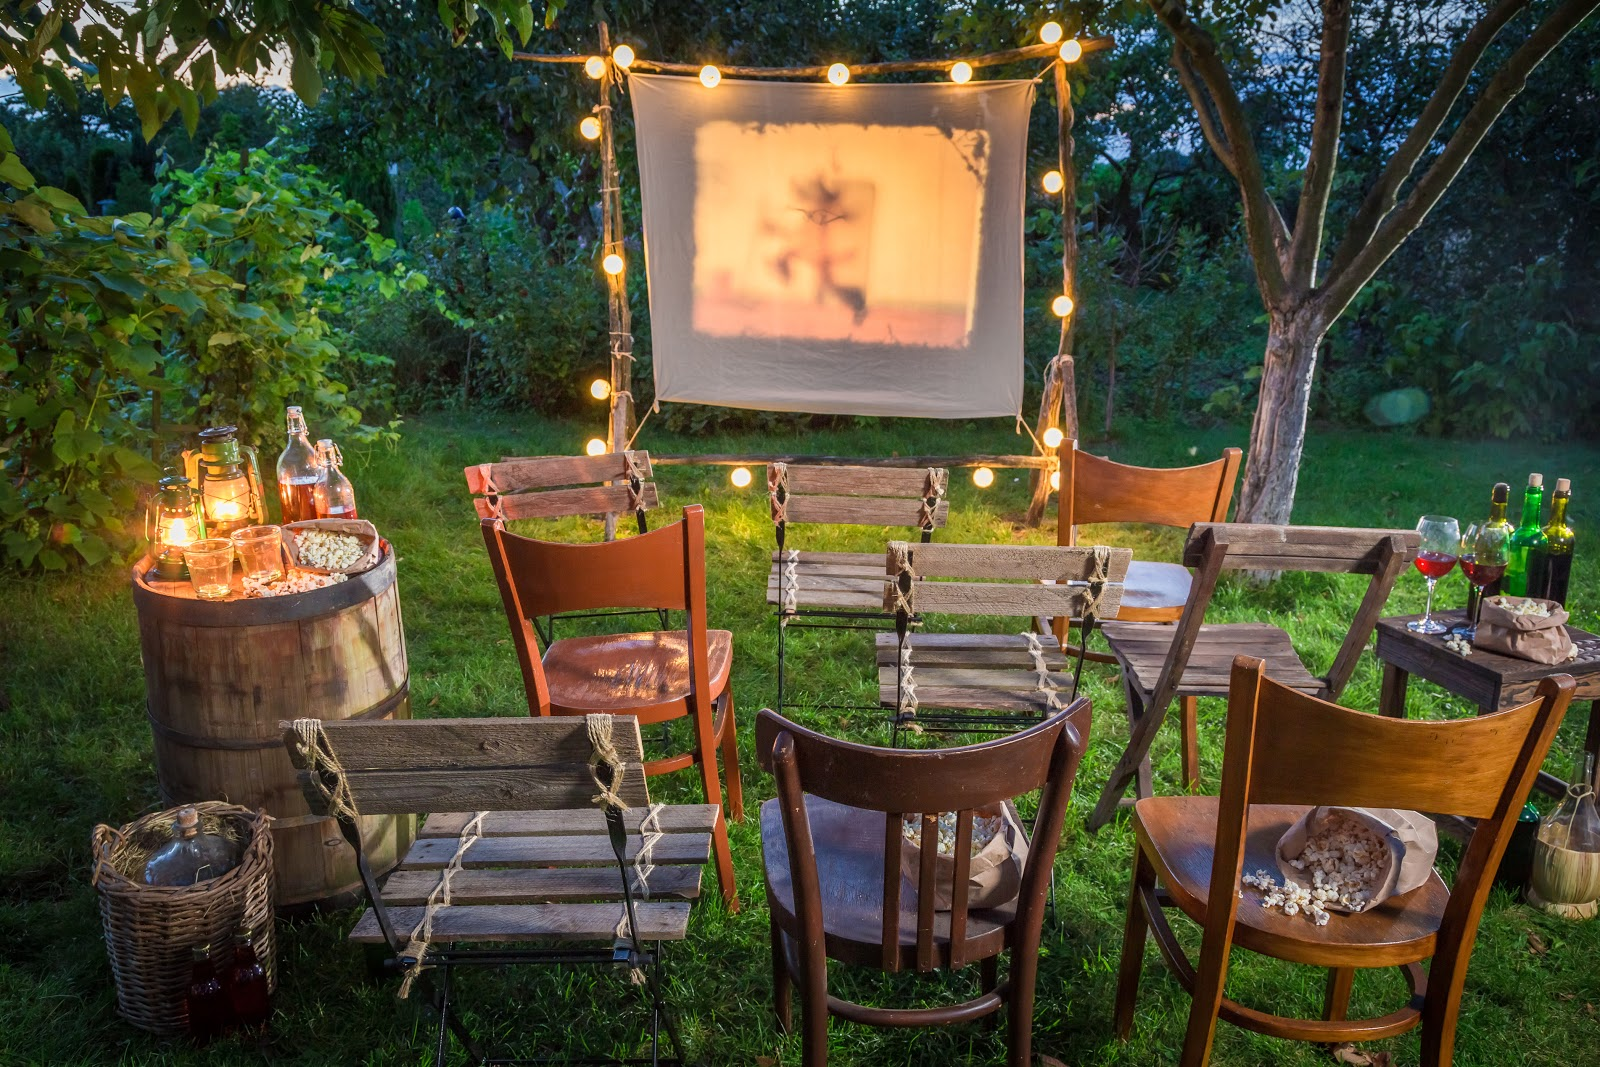 An outdoor movie night setup in the garden